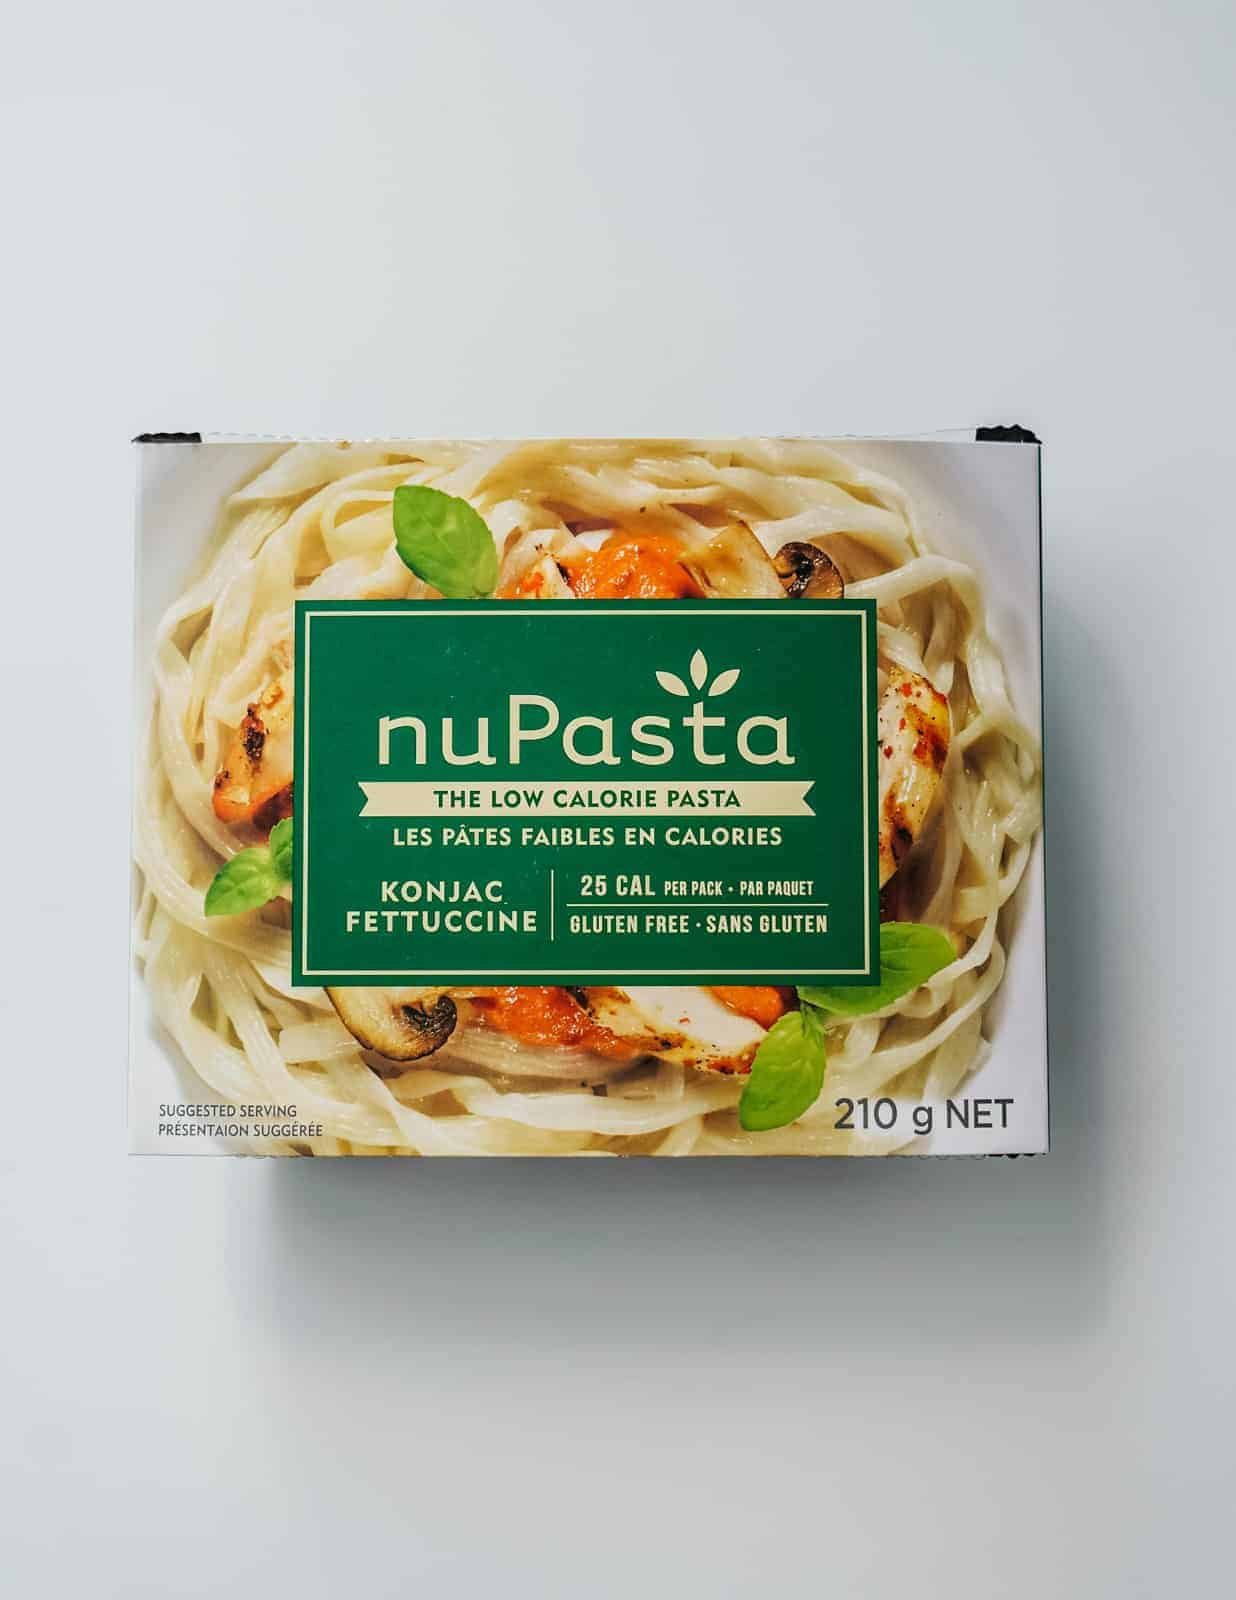 NuPasta in a box on a white countertop.